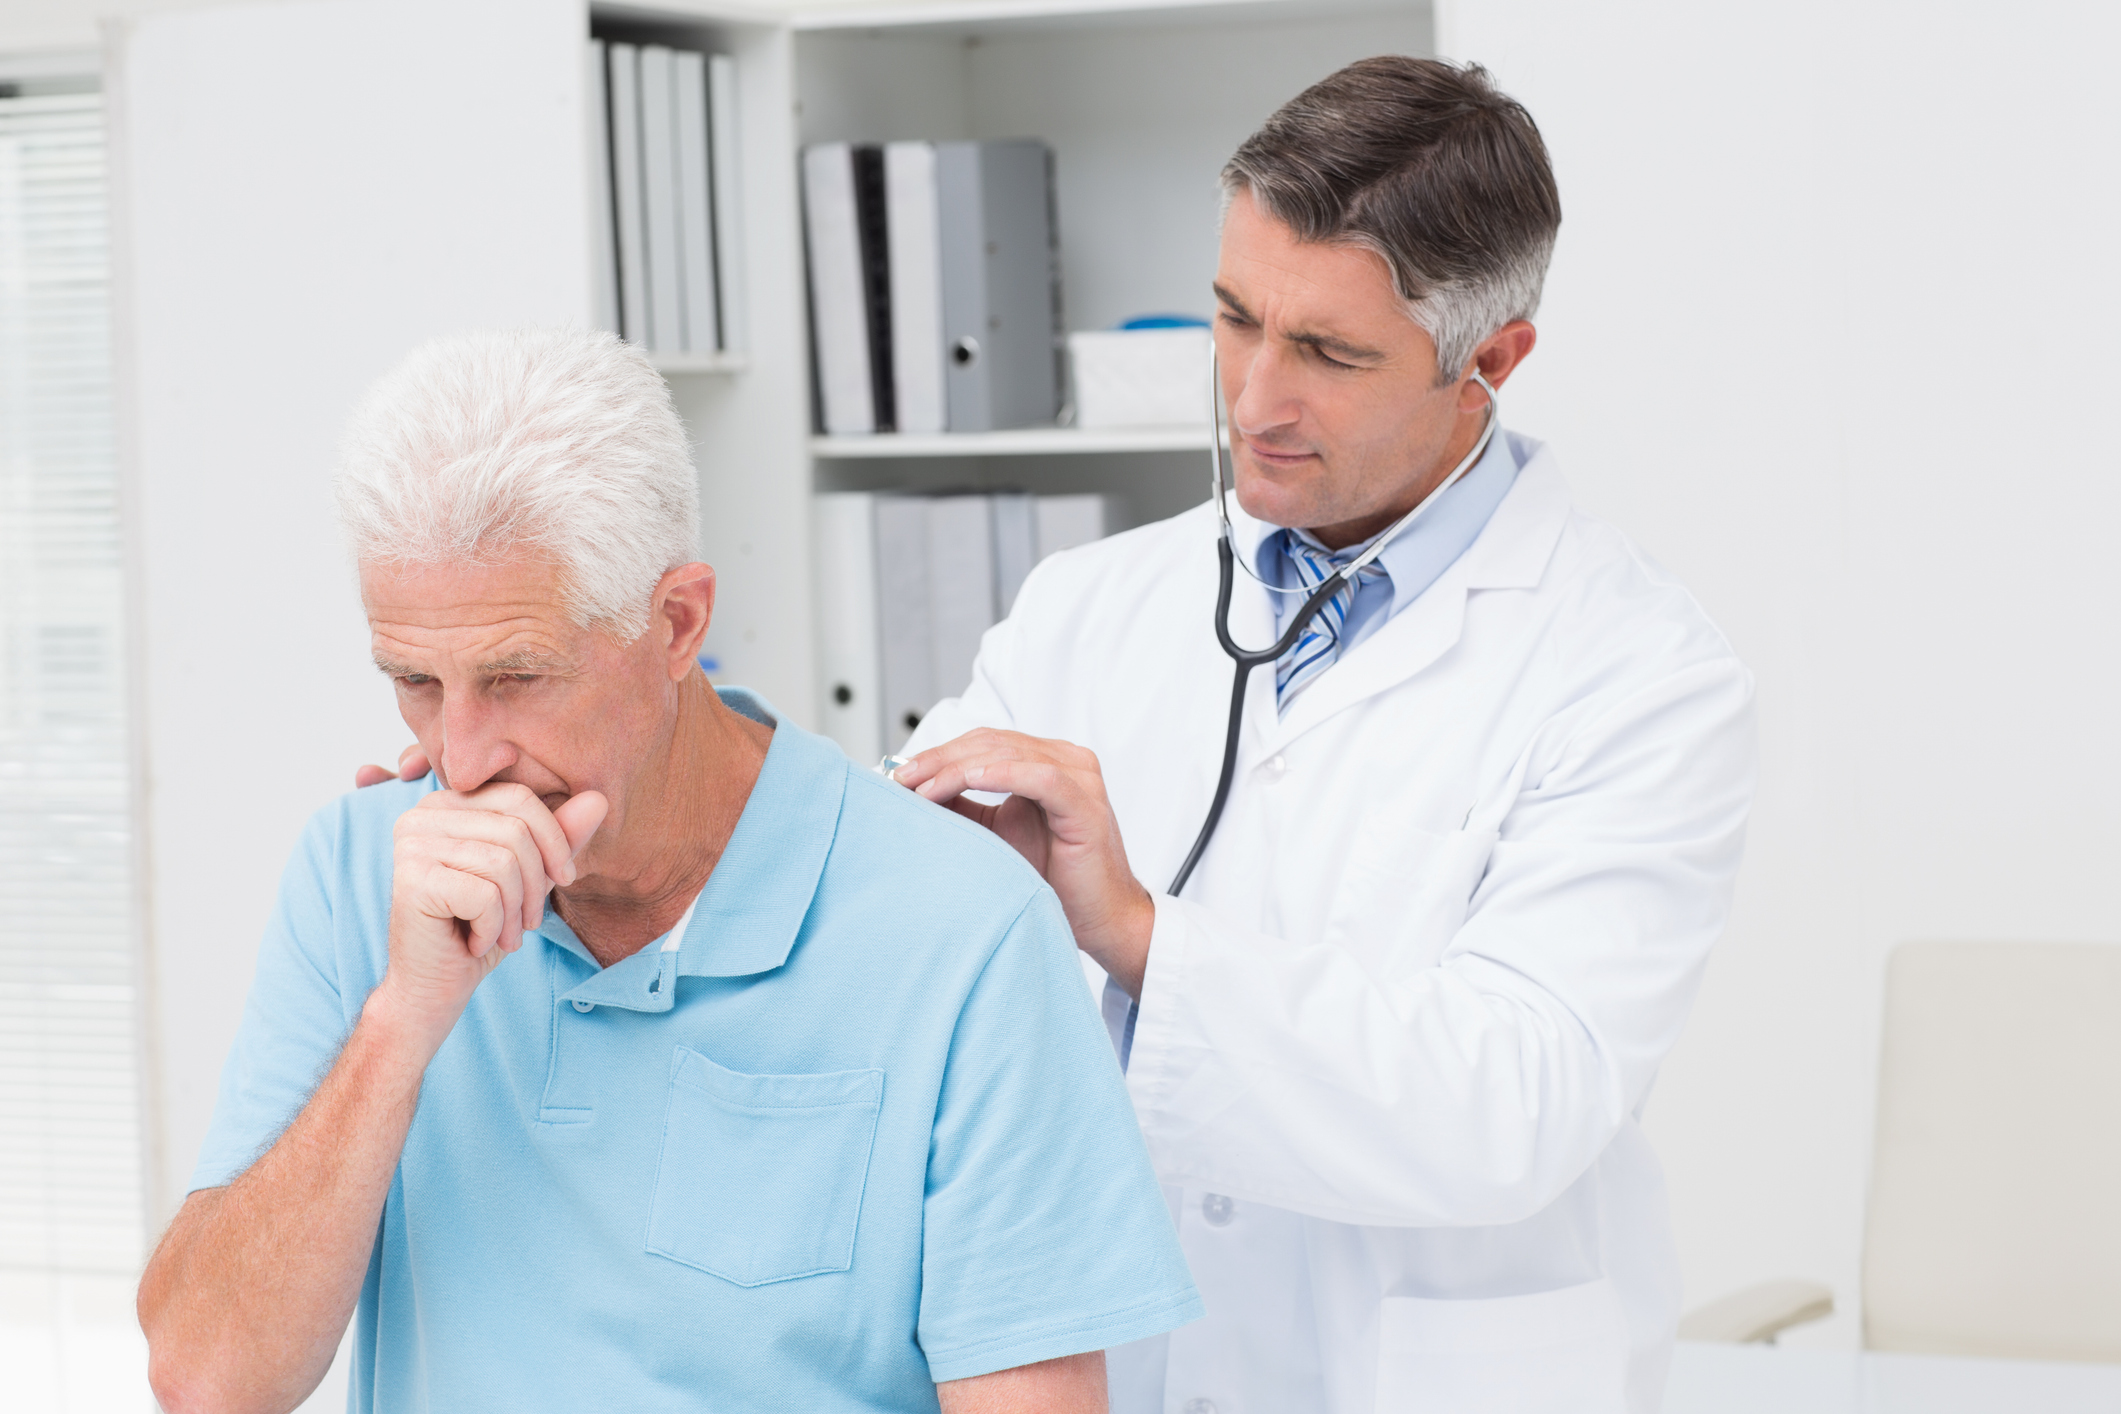 upper tract asian single men In men, a prostate specific upper tract studies: alliance urology specialists is a full service urologic practice with on-site ct scanning, diagnostic x-ray.